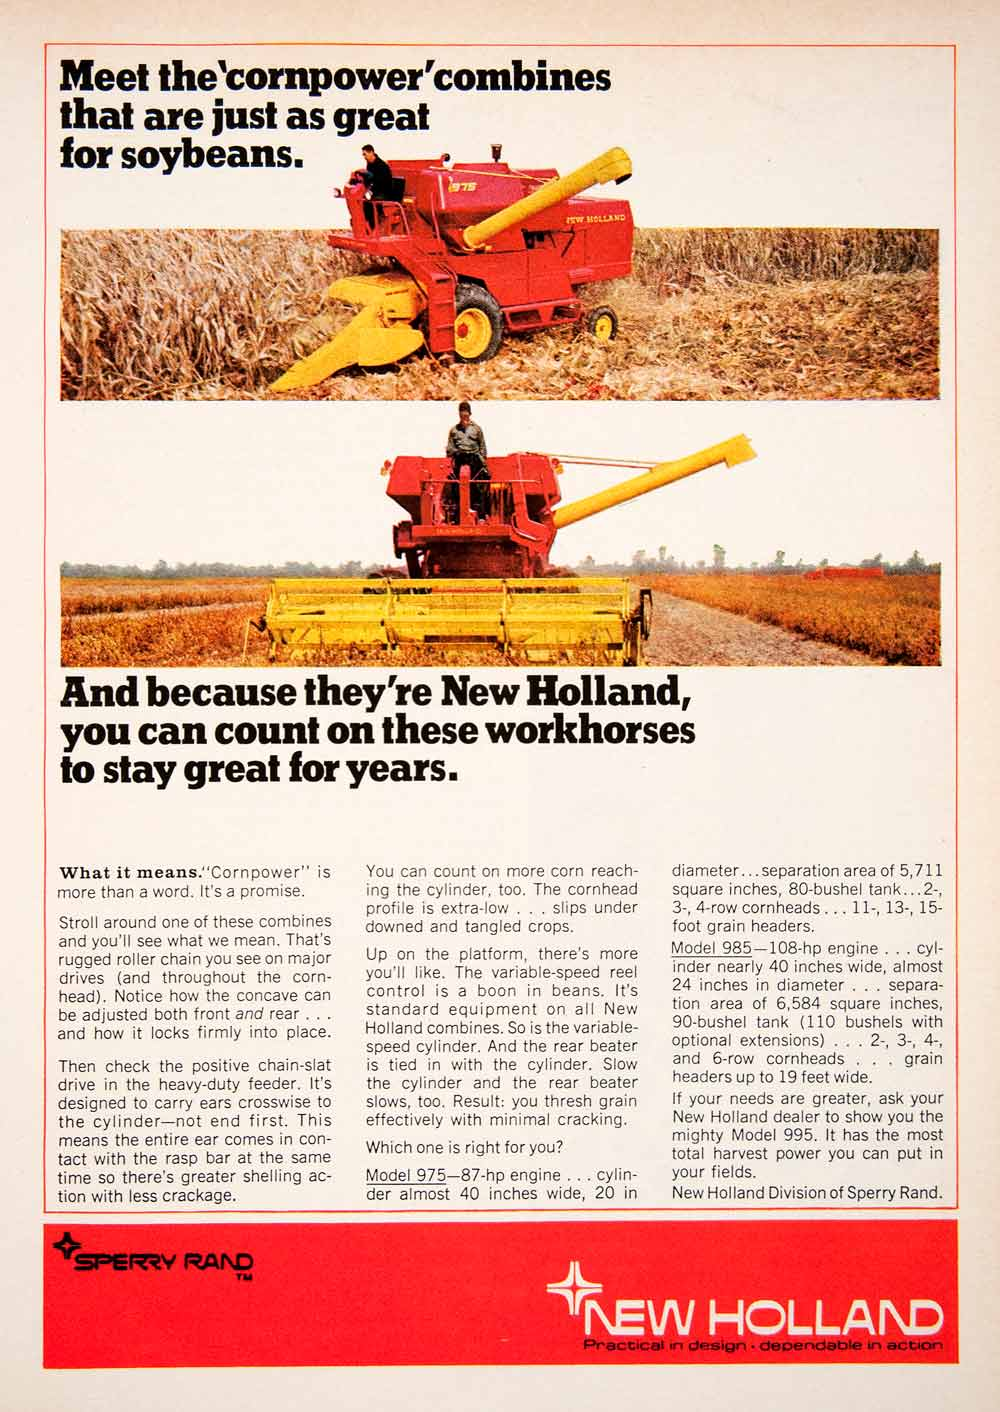 1969 Ad New Holland Sperry Rand Model 975 985 Soybean Farming Agriculture SF1